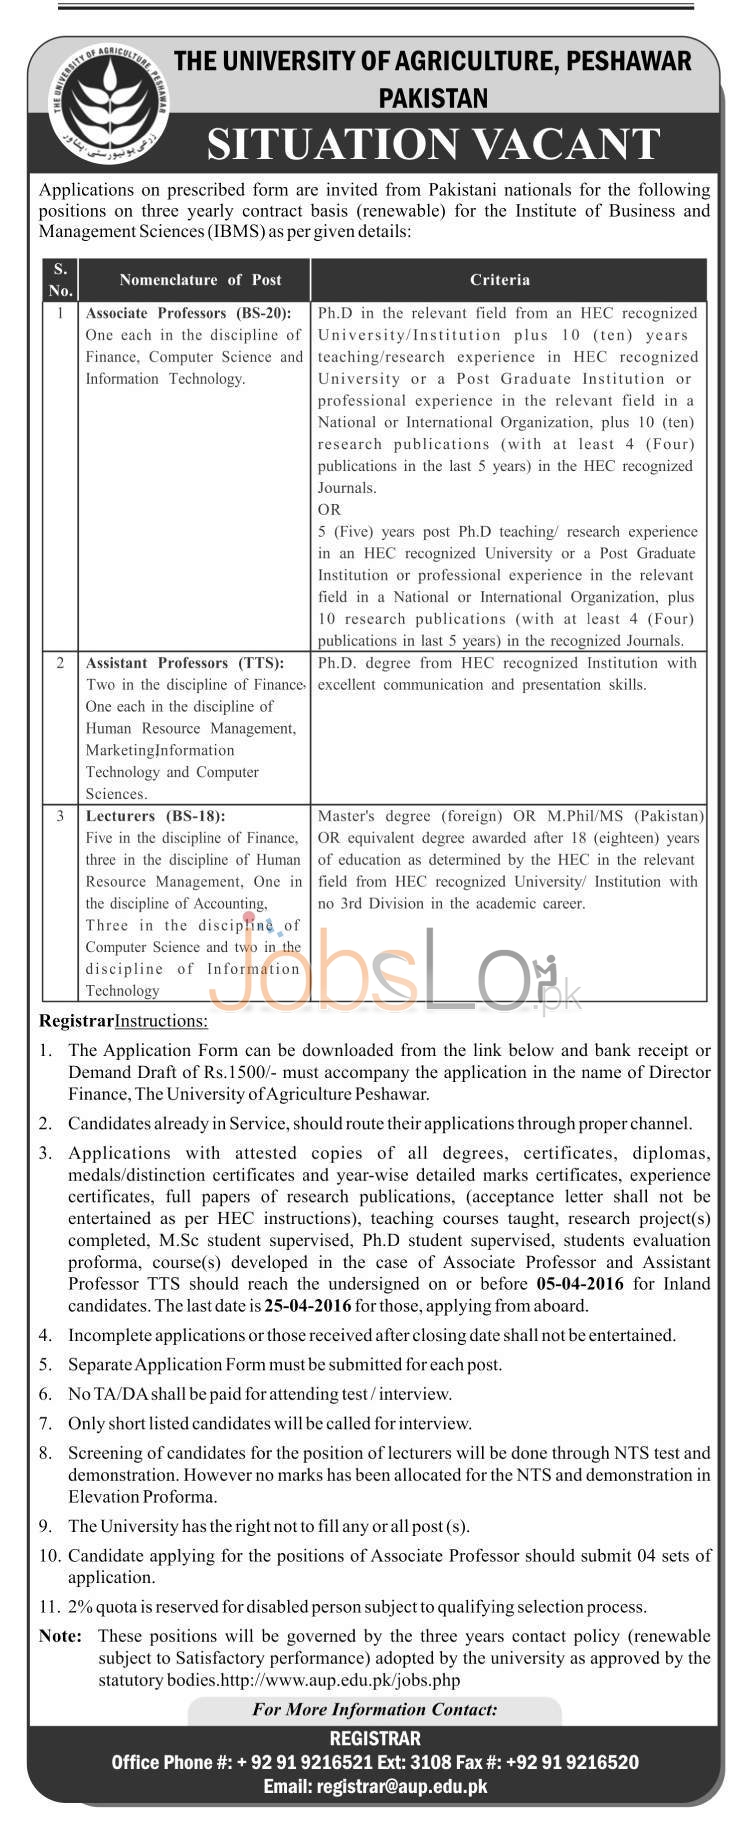 Recruitment Opportunities in The University Of Agriculture 15 March 2016 Peshawar Application Form Latest